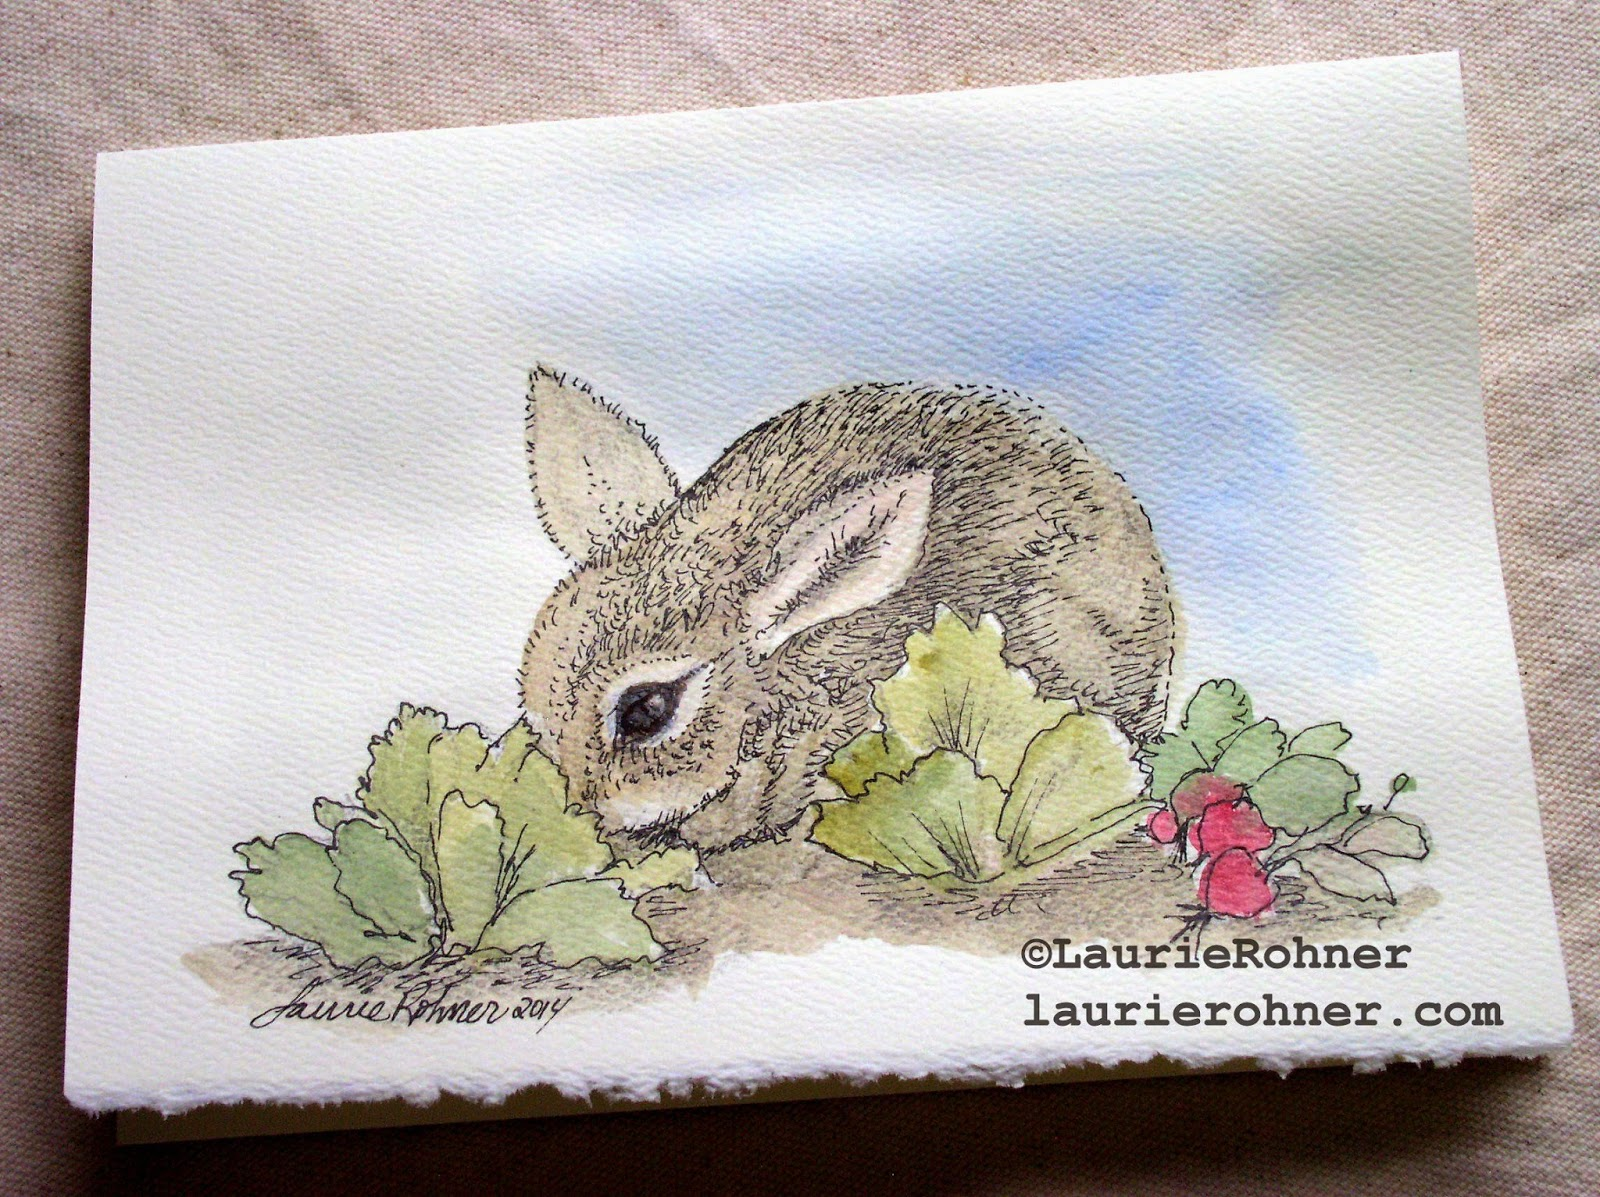 Laurie Rohner Studio watercolor nature art cards